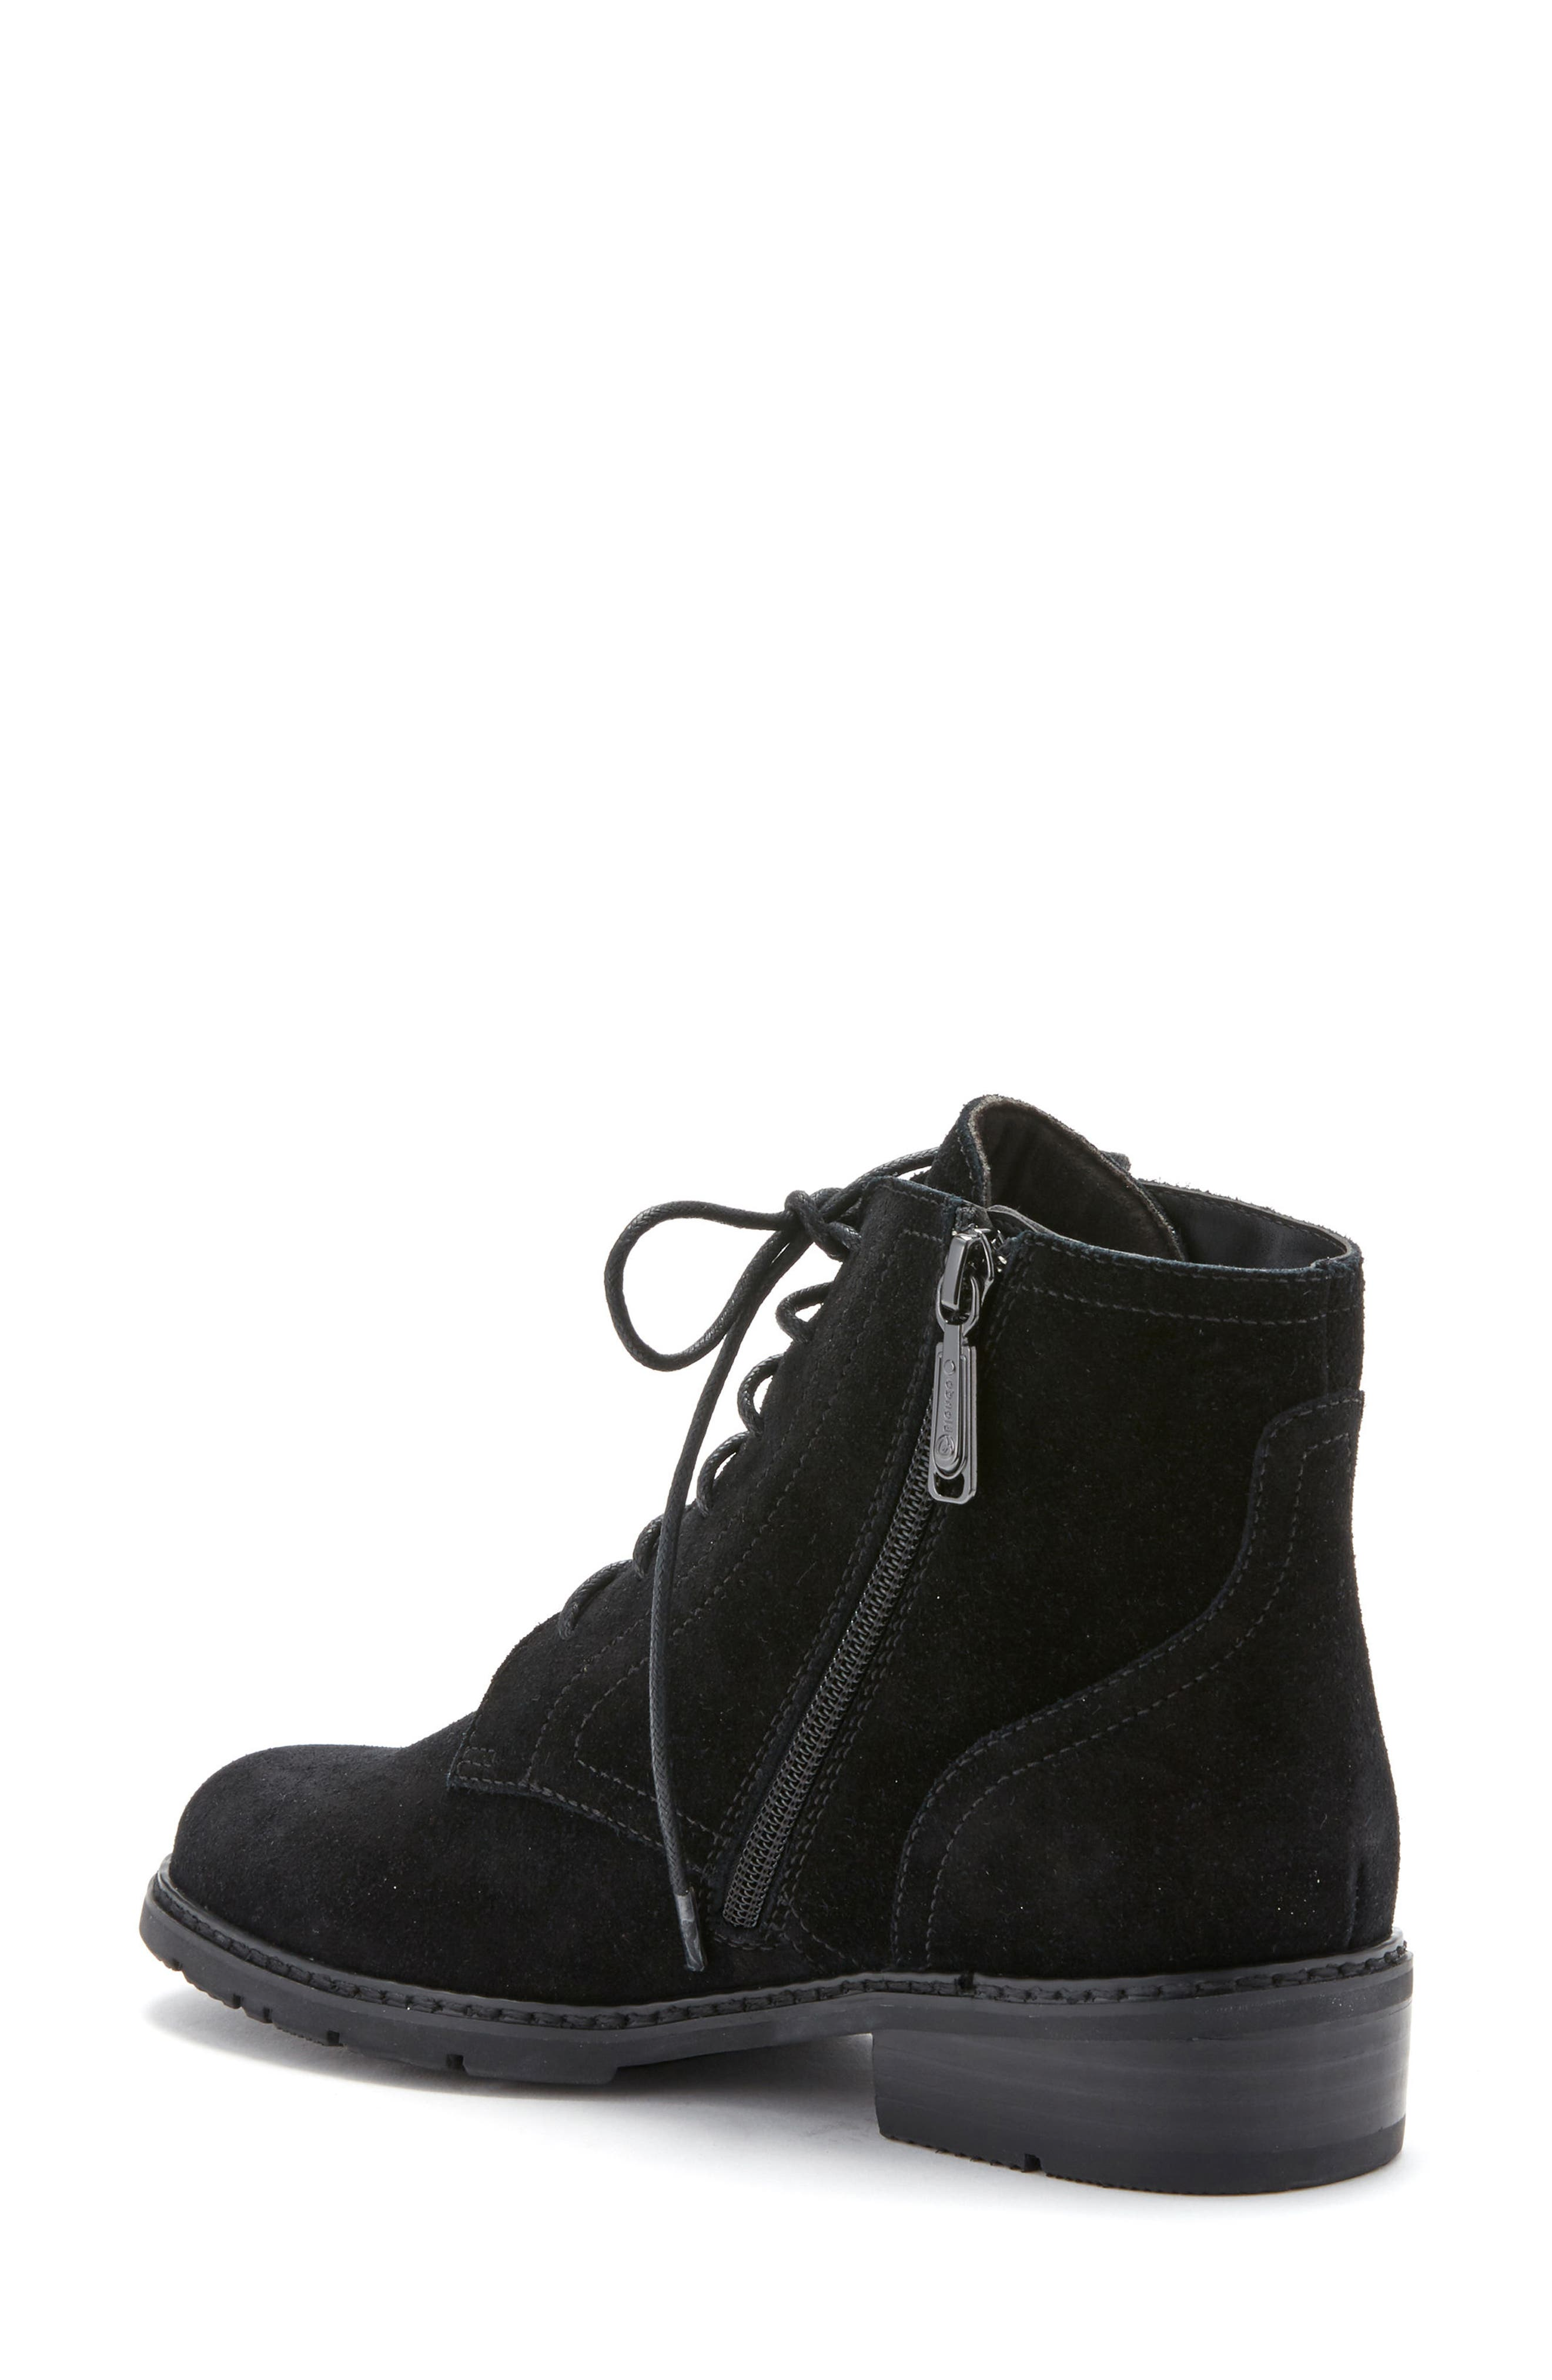 Vivi Waterproof Boot,                             Alternate thumbnail 2, color,                             Black Suede